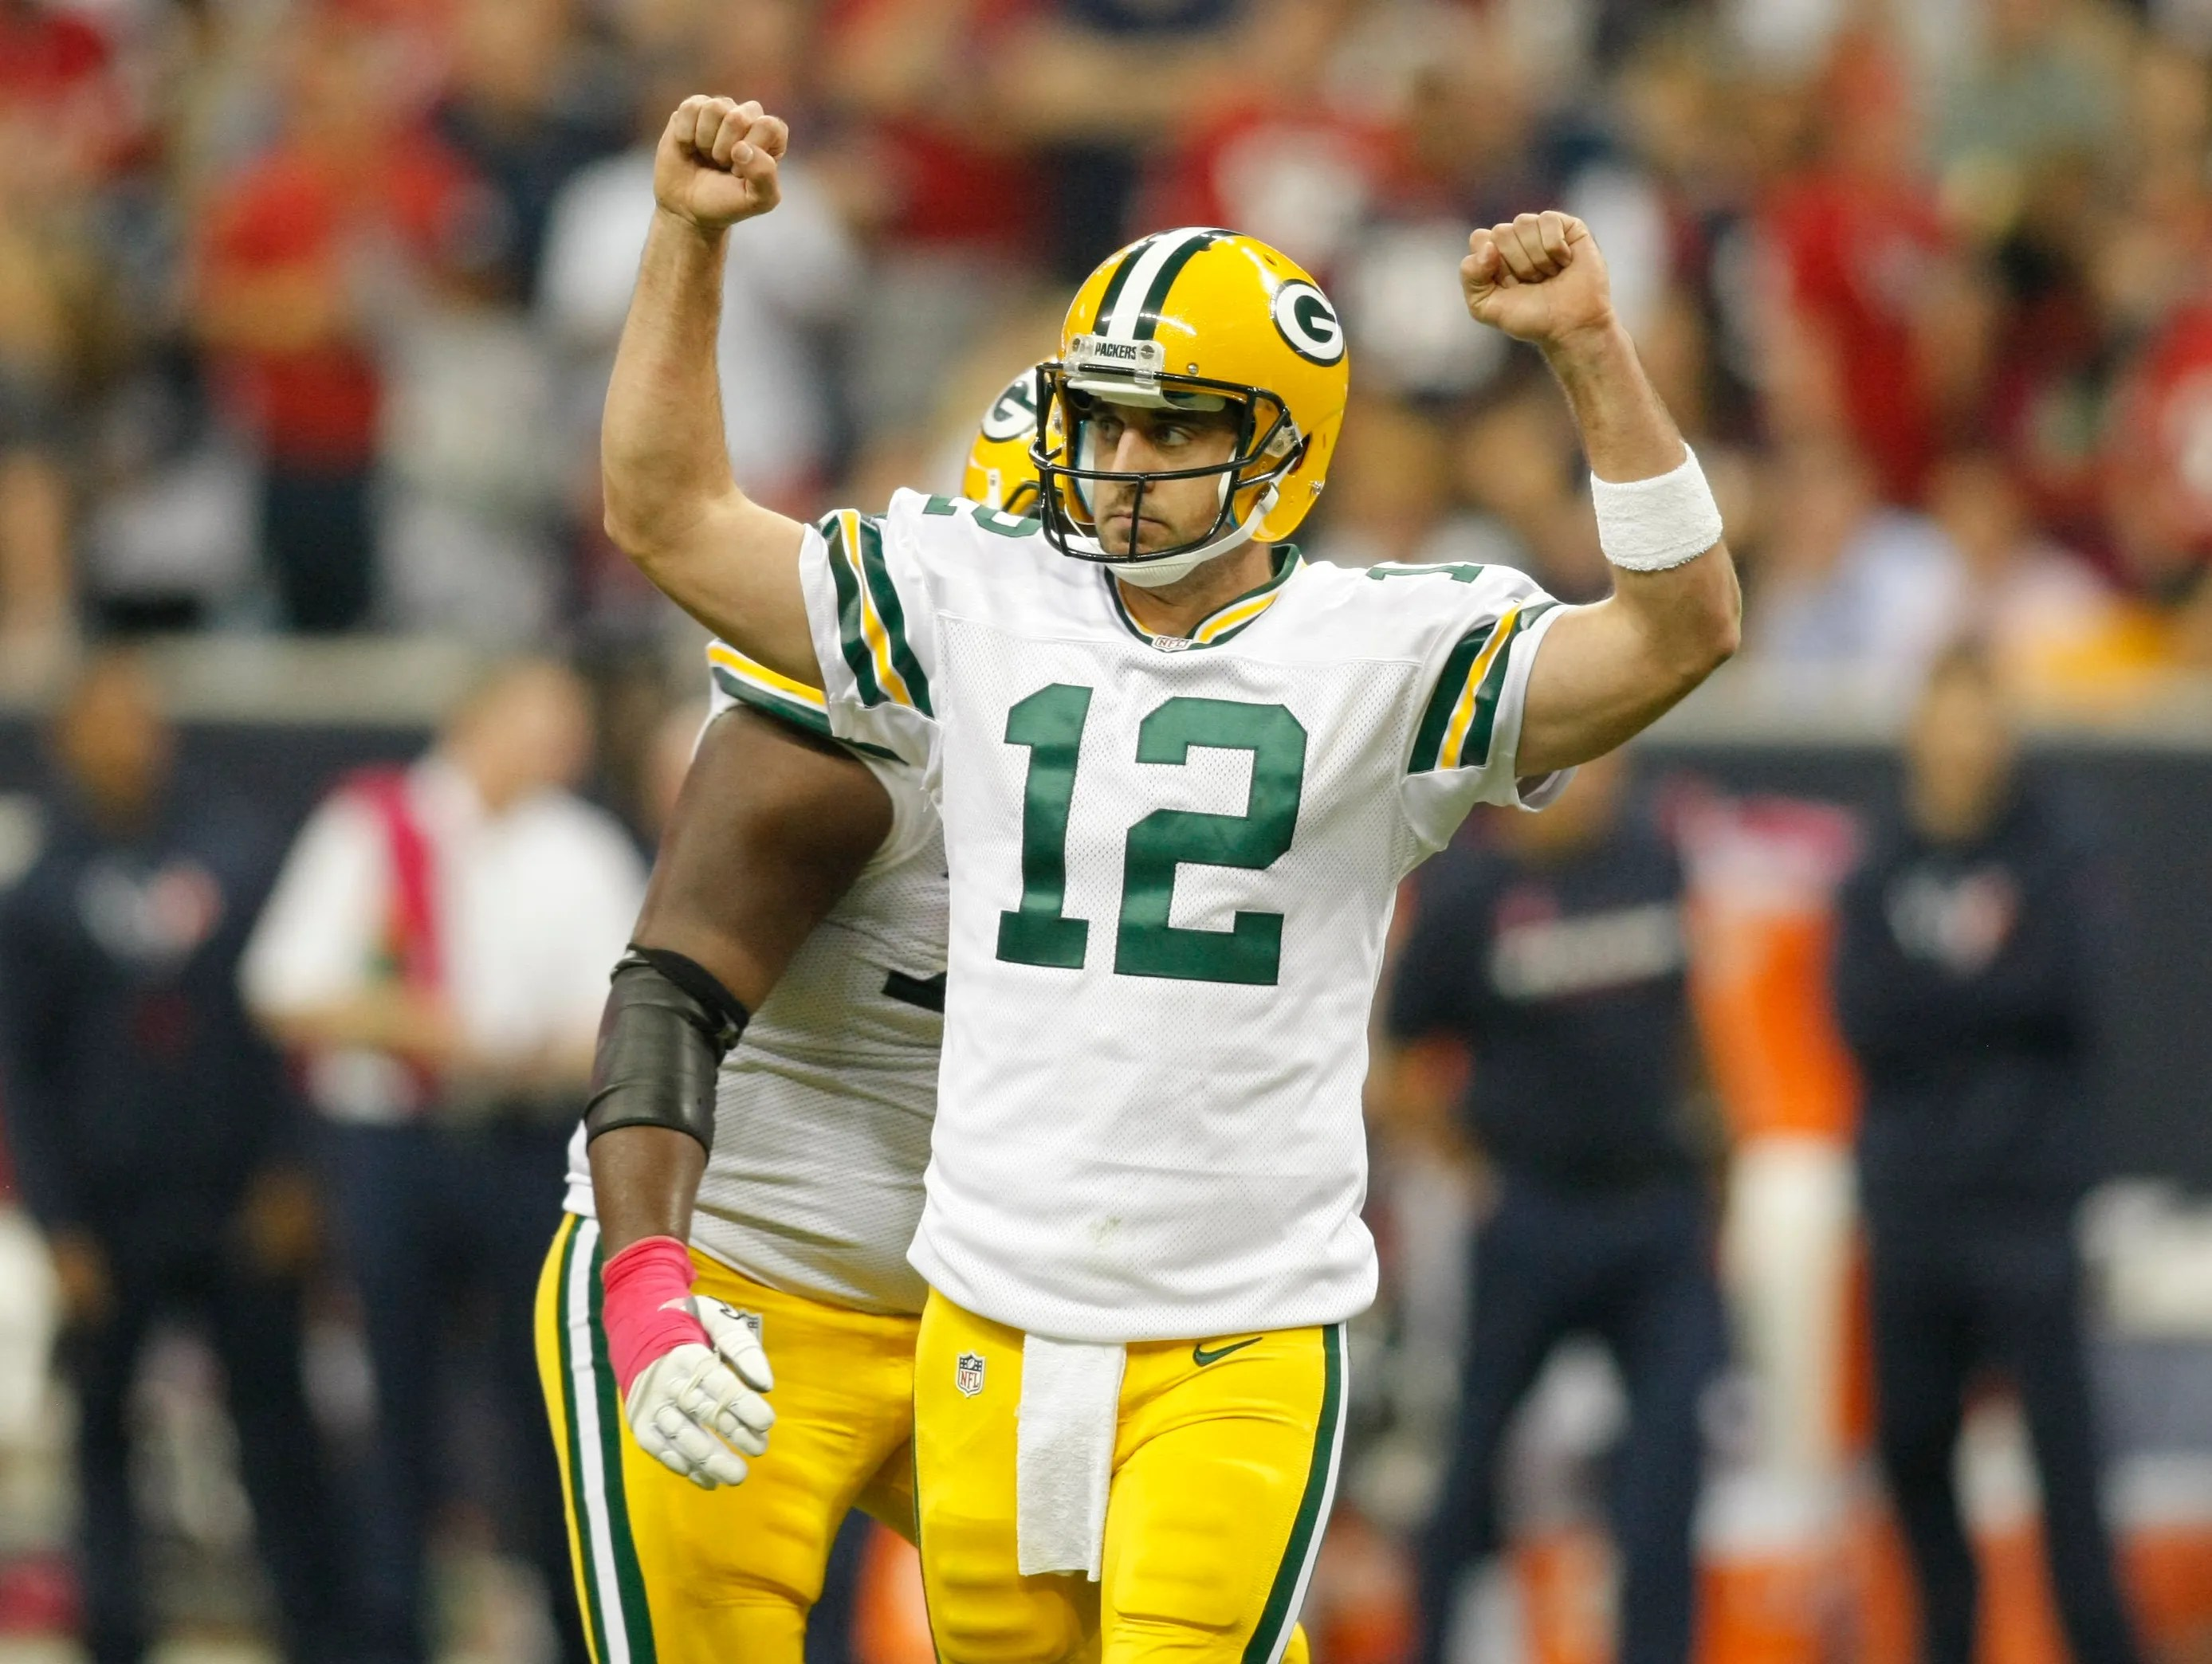 1. Aaron Rodgers, Green Bay Packers